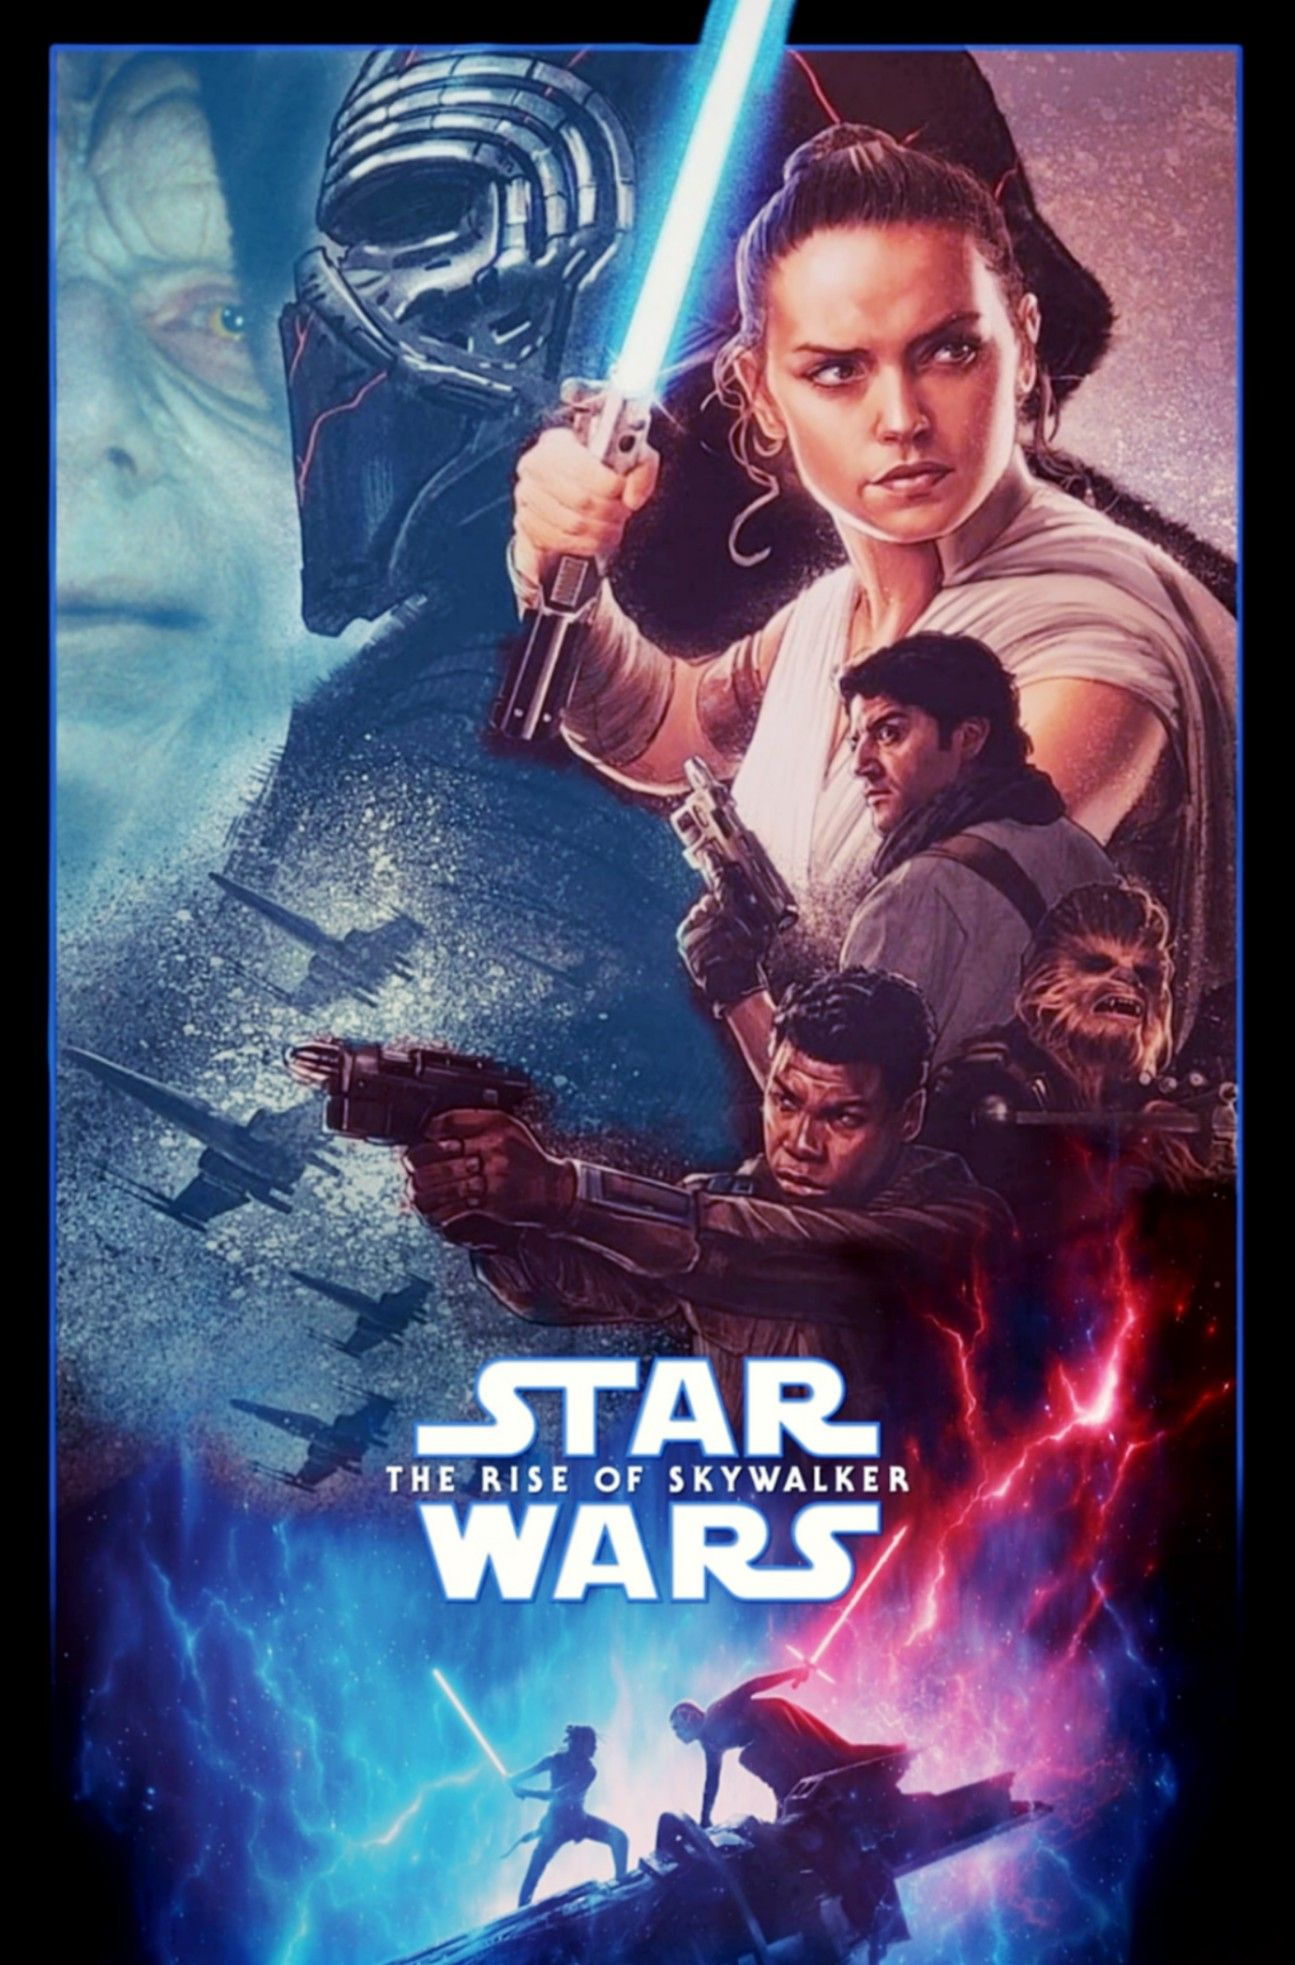 Upcoming Star Wars Episode Ix Daisy Ridley Skywalker Star Wars Watch Star Wars Skywalker